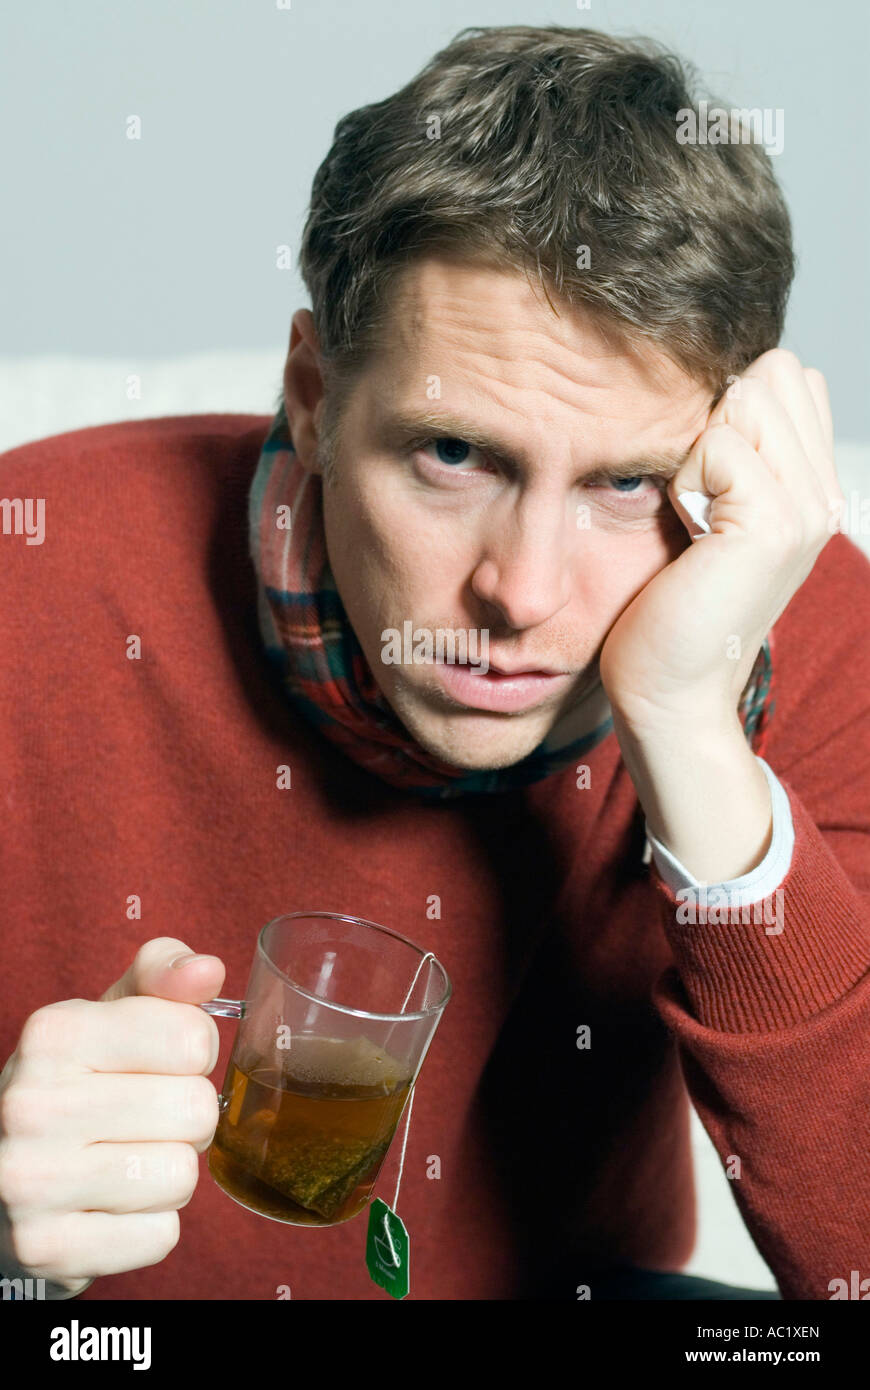 Man with cold a teacup in hands - Stock Image